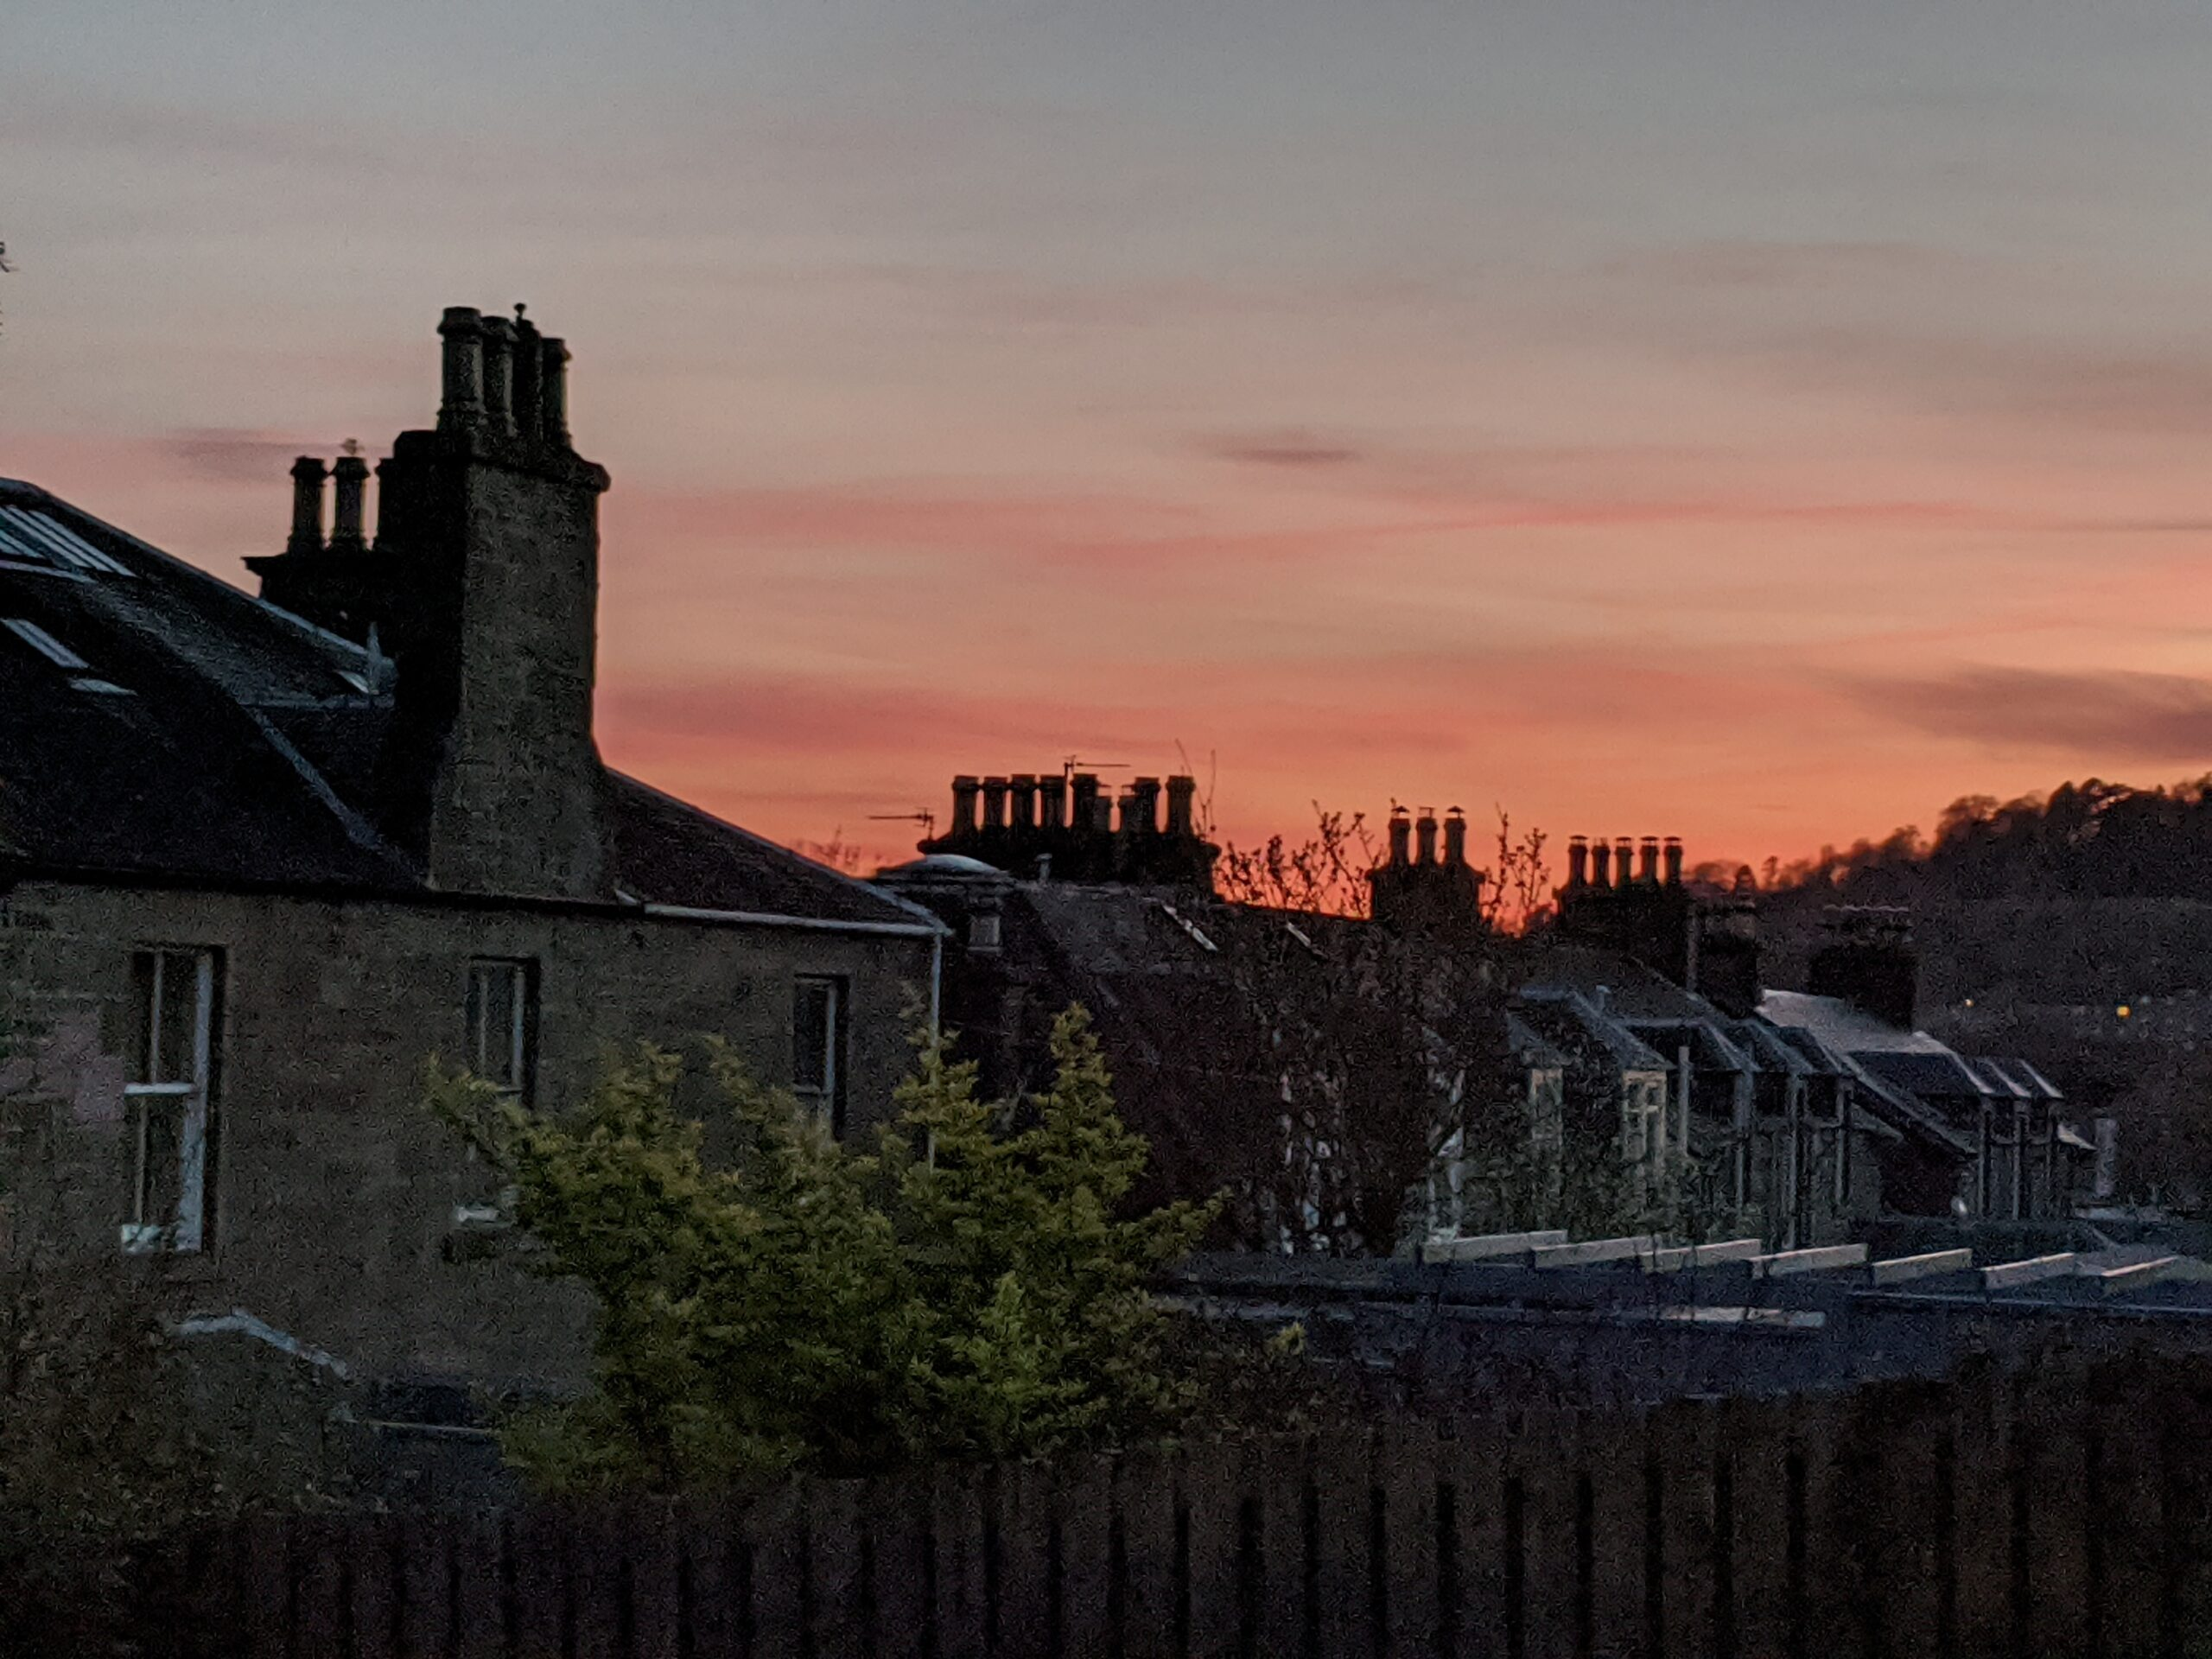 Sunset over street in Dundee